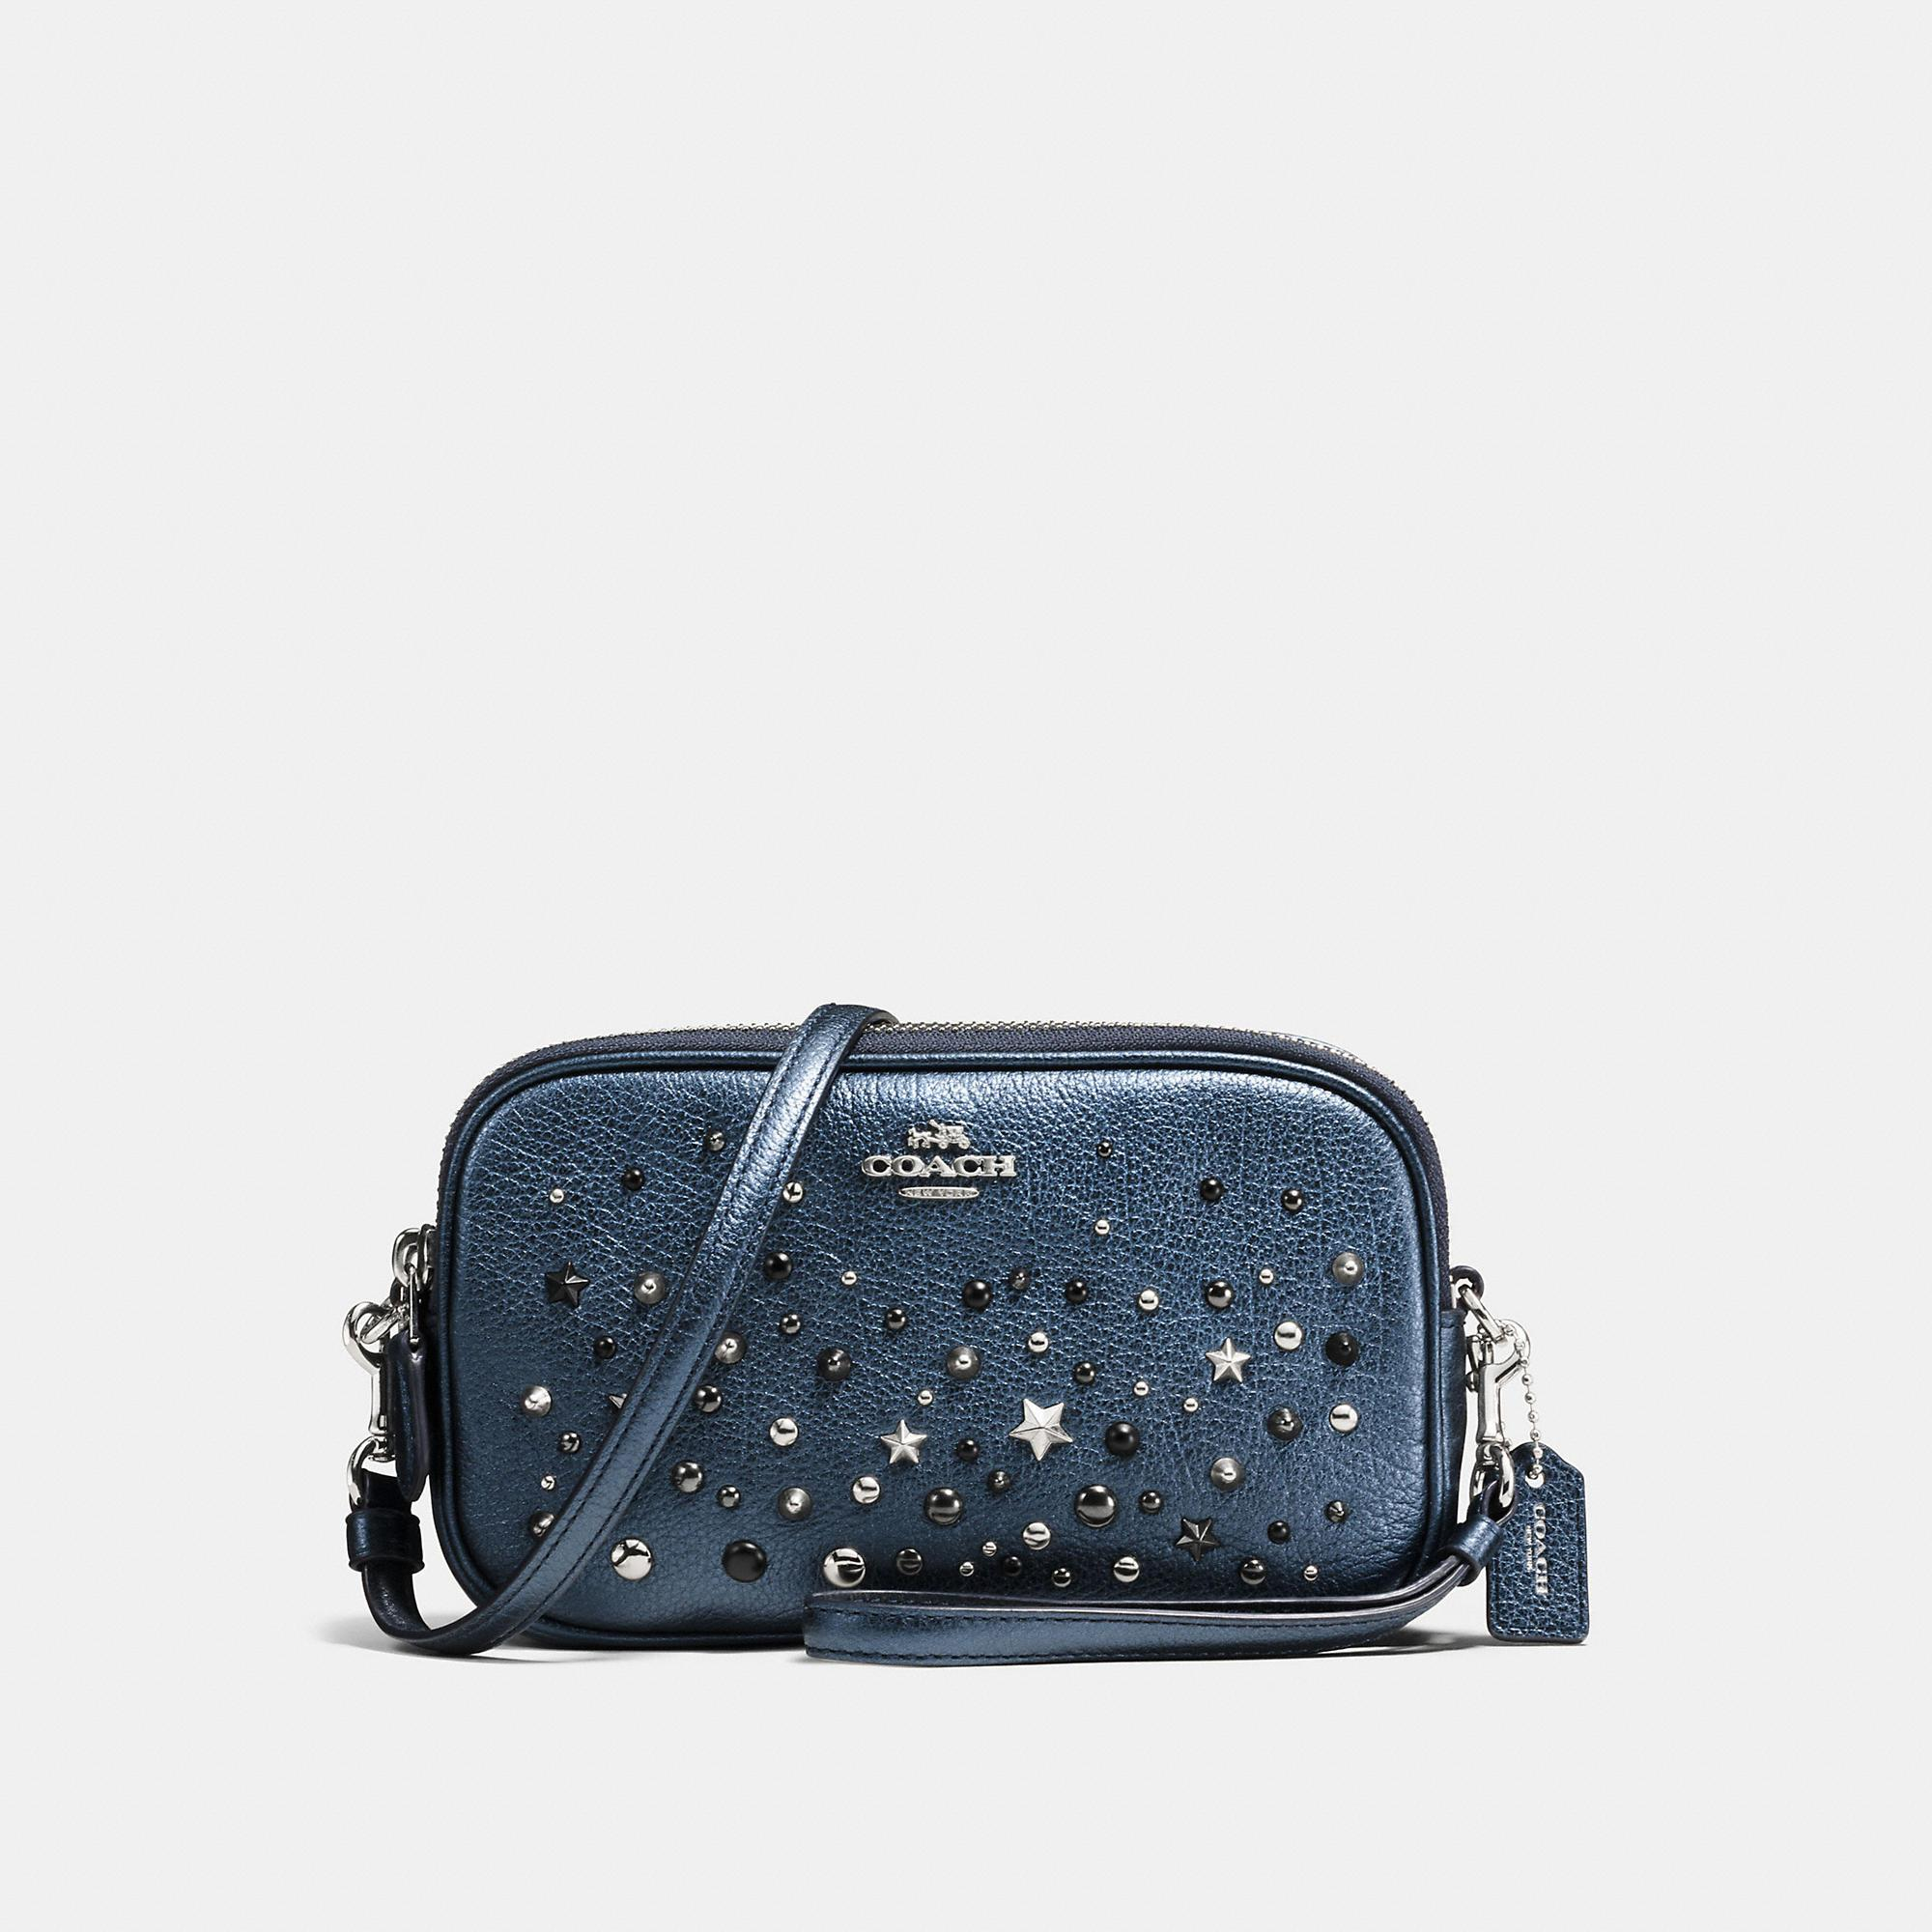 Coach Crossbody Clutch With Star Rivets In Metallic Blue/silver